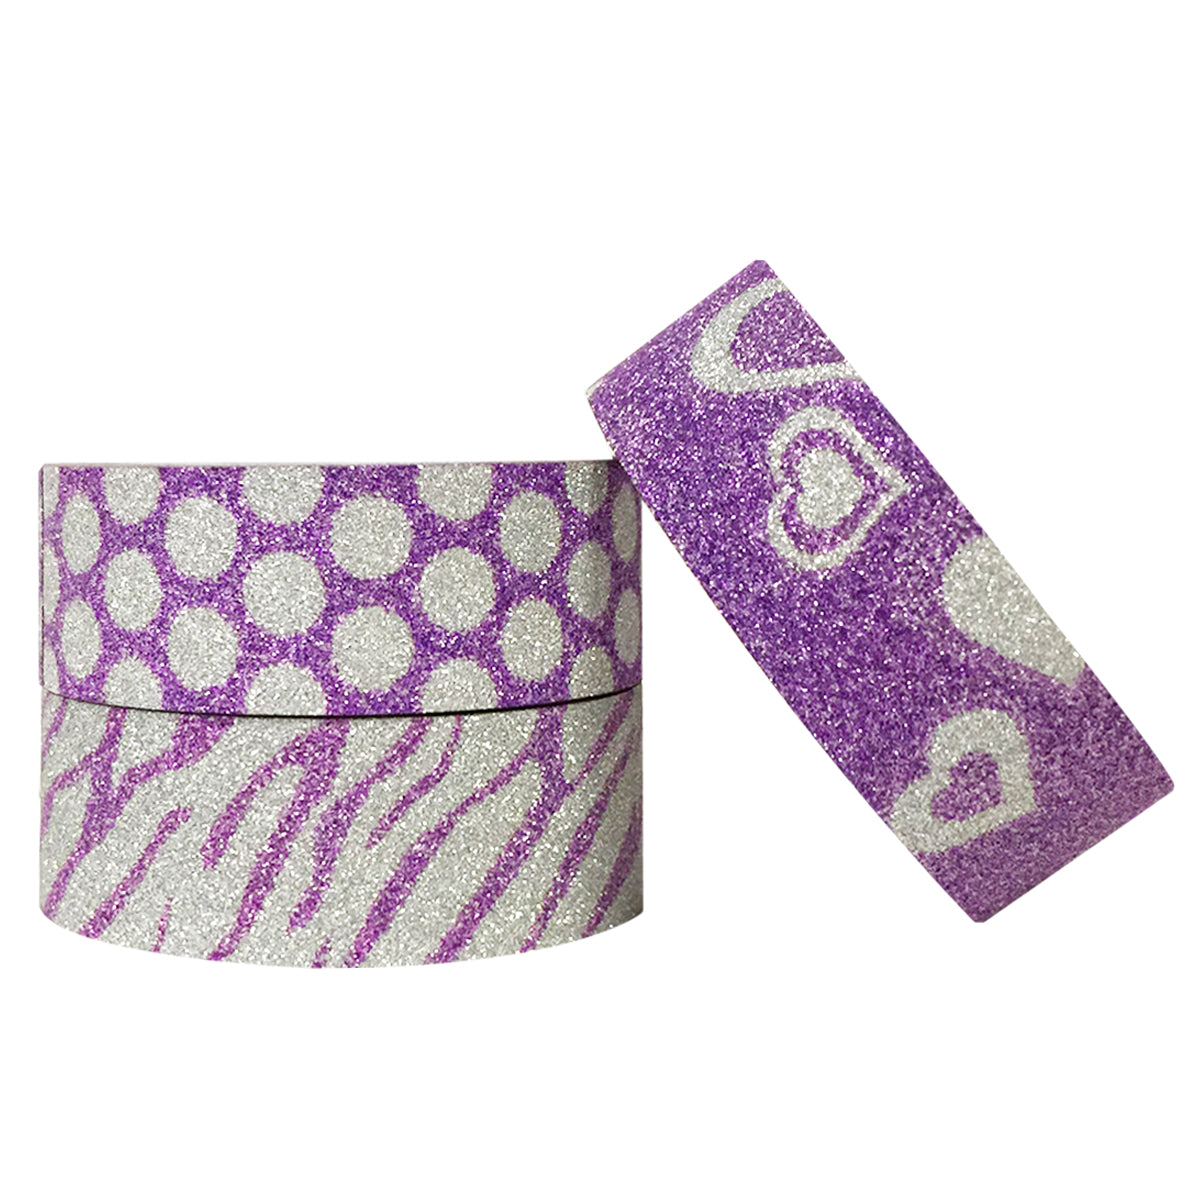 Wrapables Purple Shimmer Washi Masking Tape (set of 3)